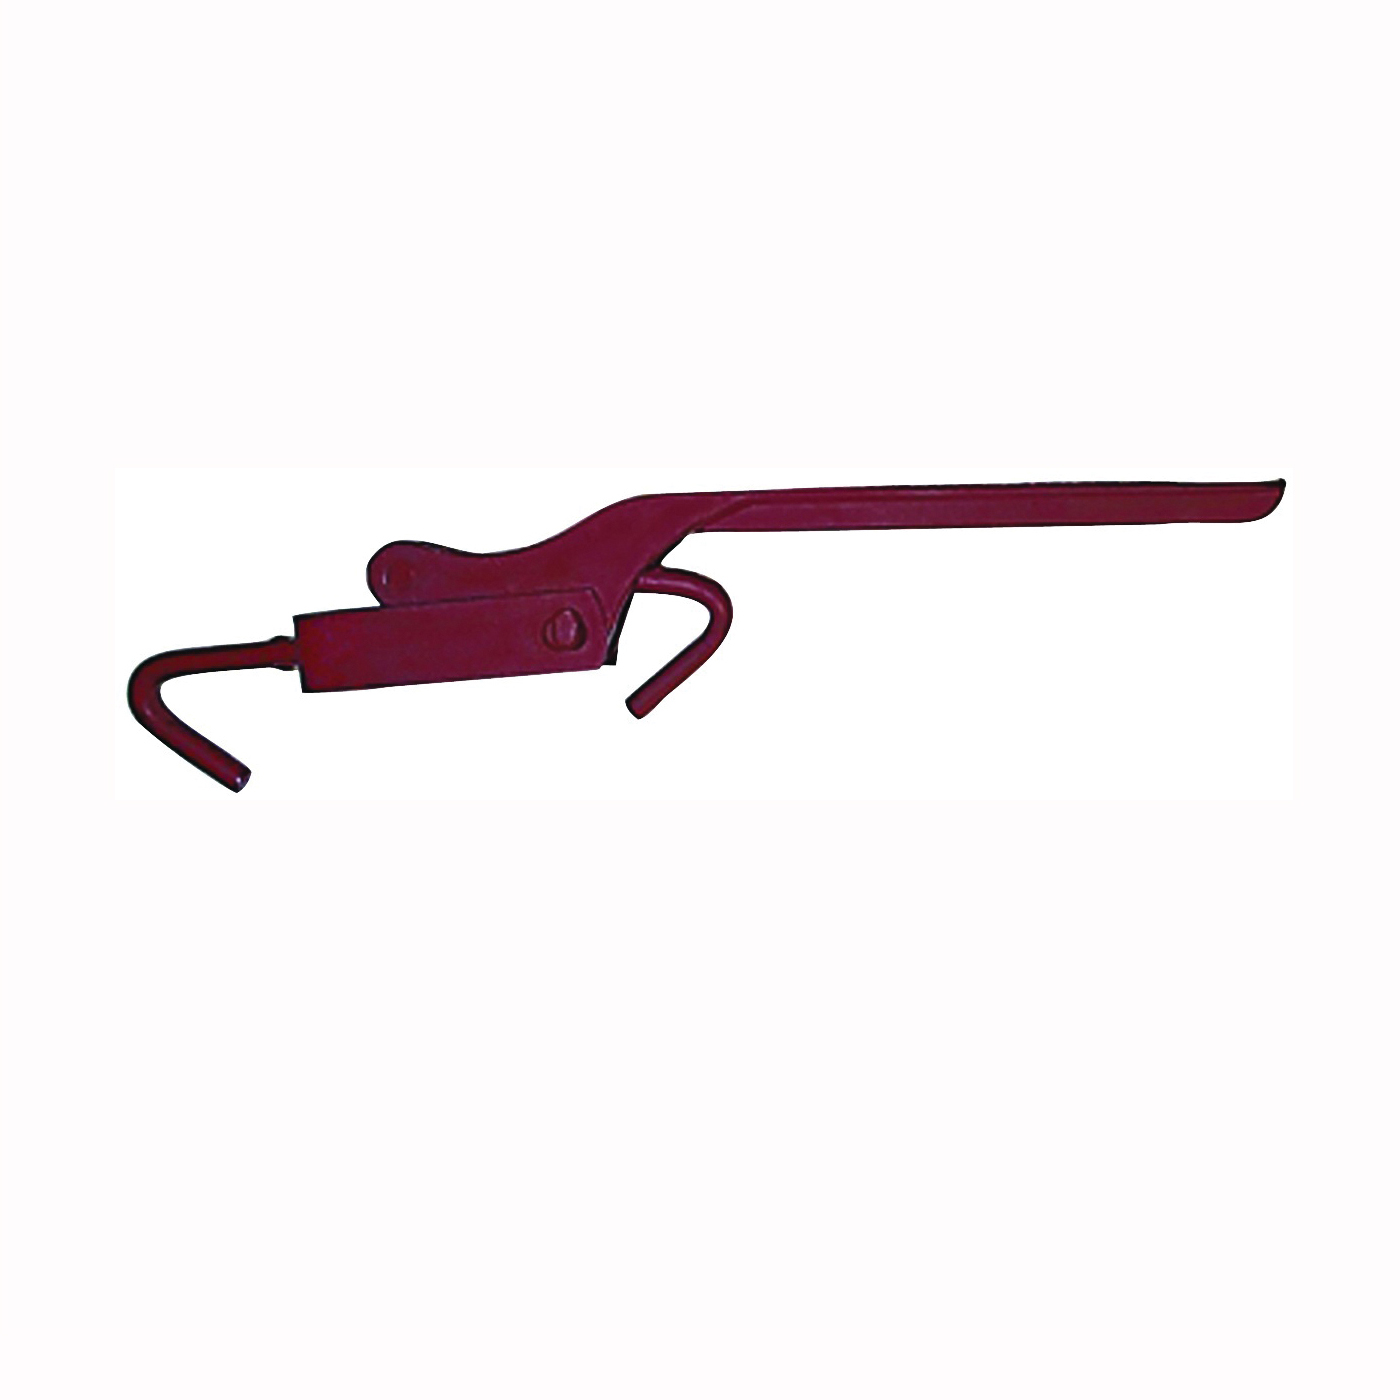 Picture of ANCRA 50025-10 Chain Tensioner, 375 lb Working Load, Ductile Iron, Red, E-Coat Paint